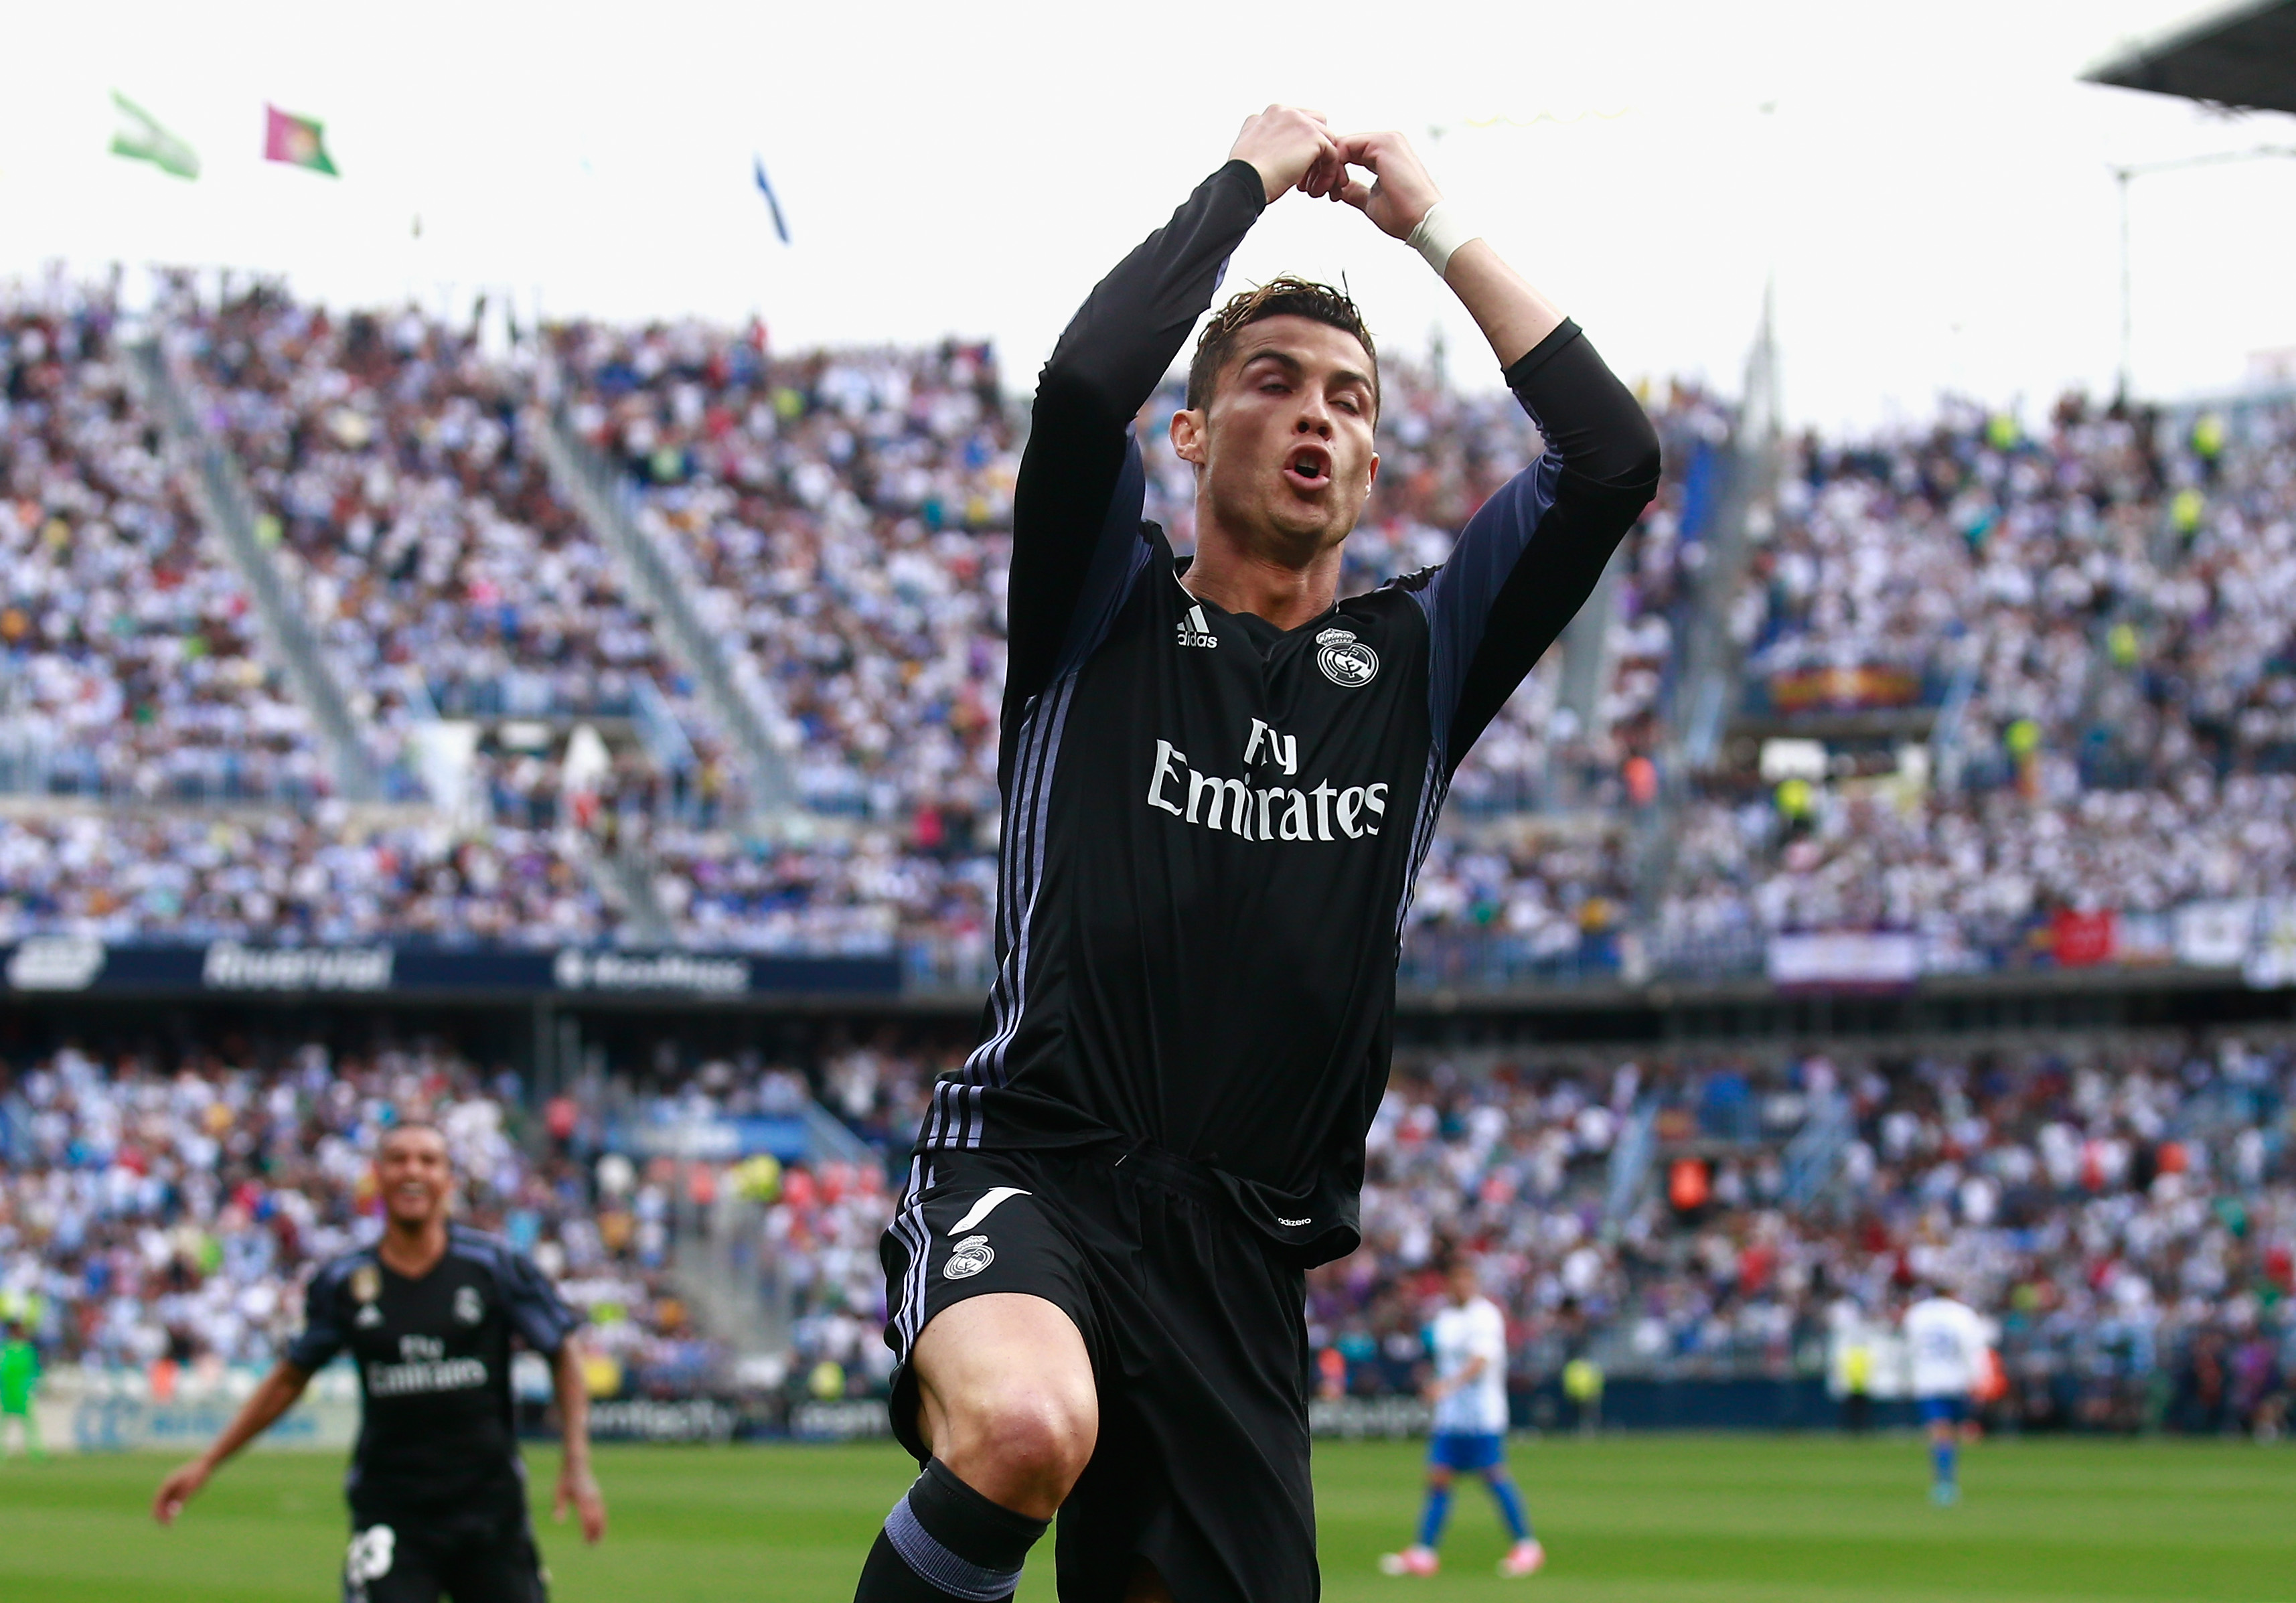 Cristiano Ronaldo sprinkler hit in Champions League final